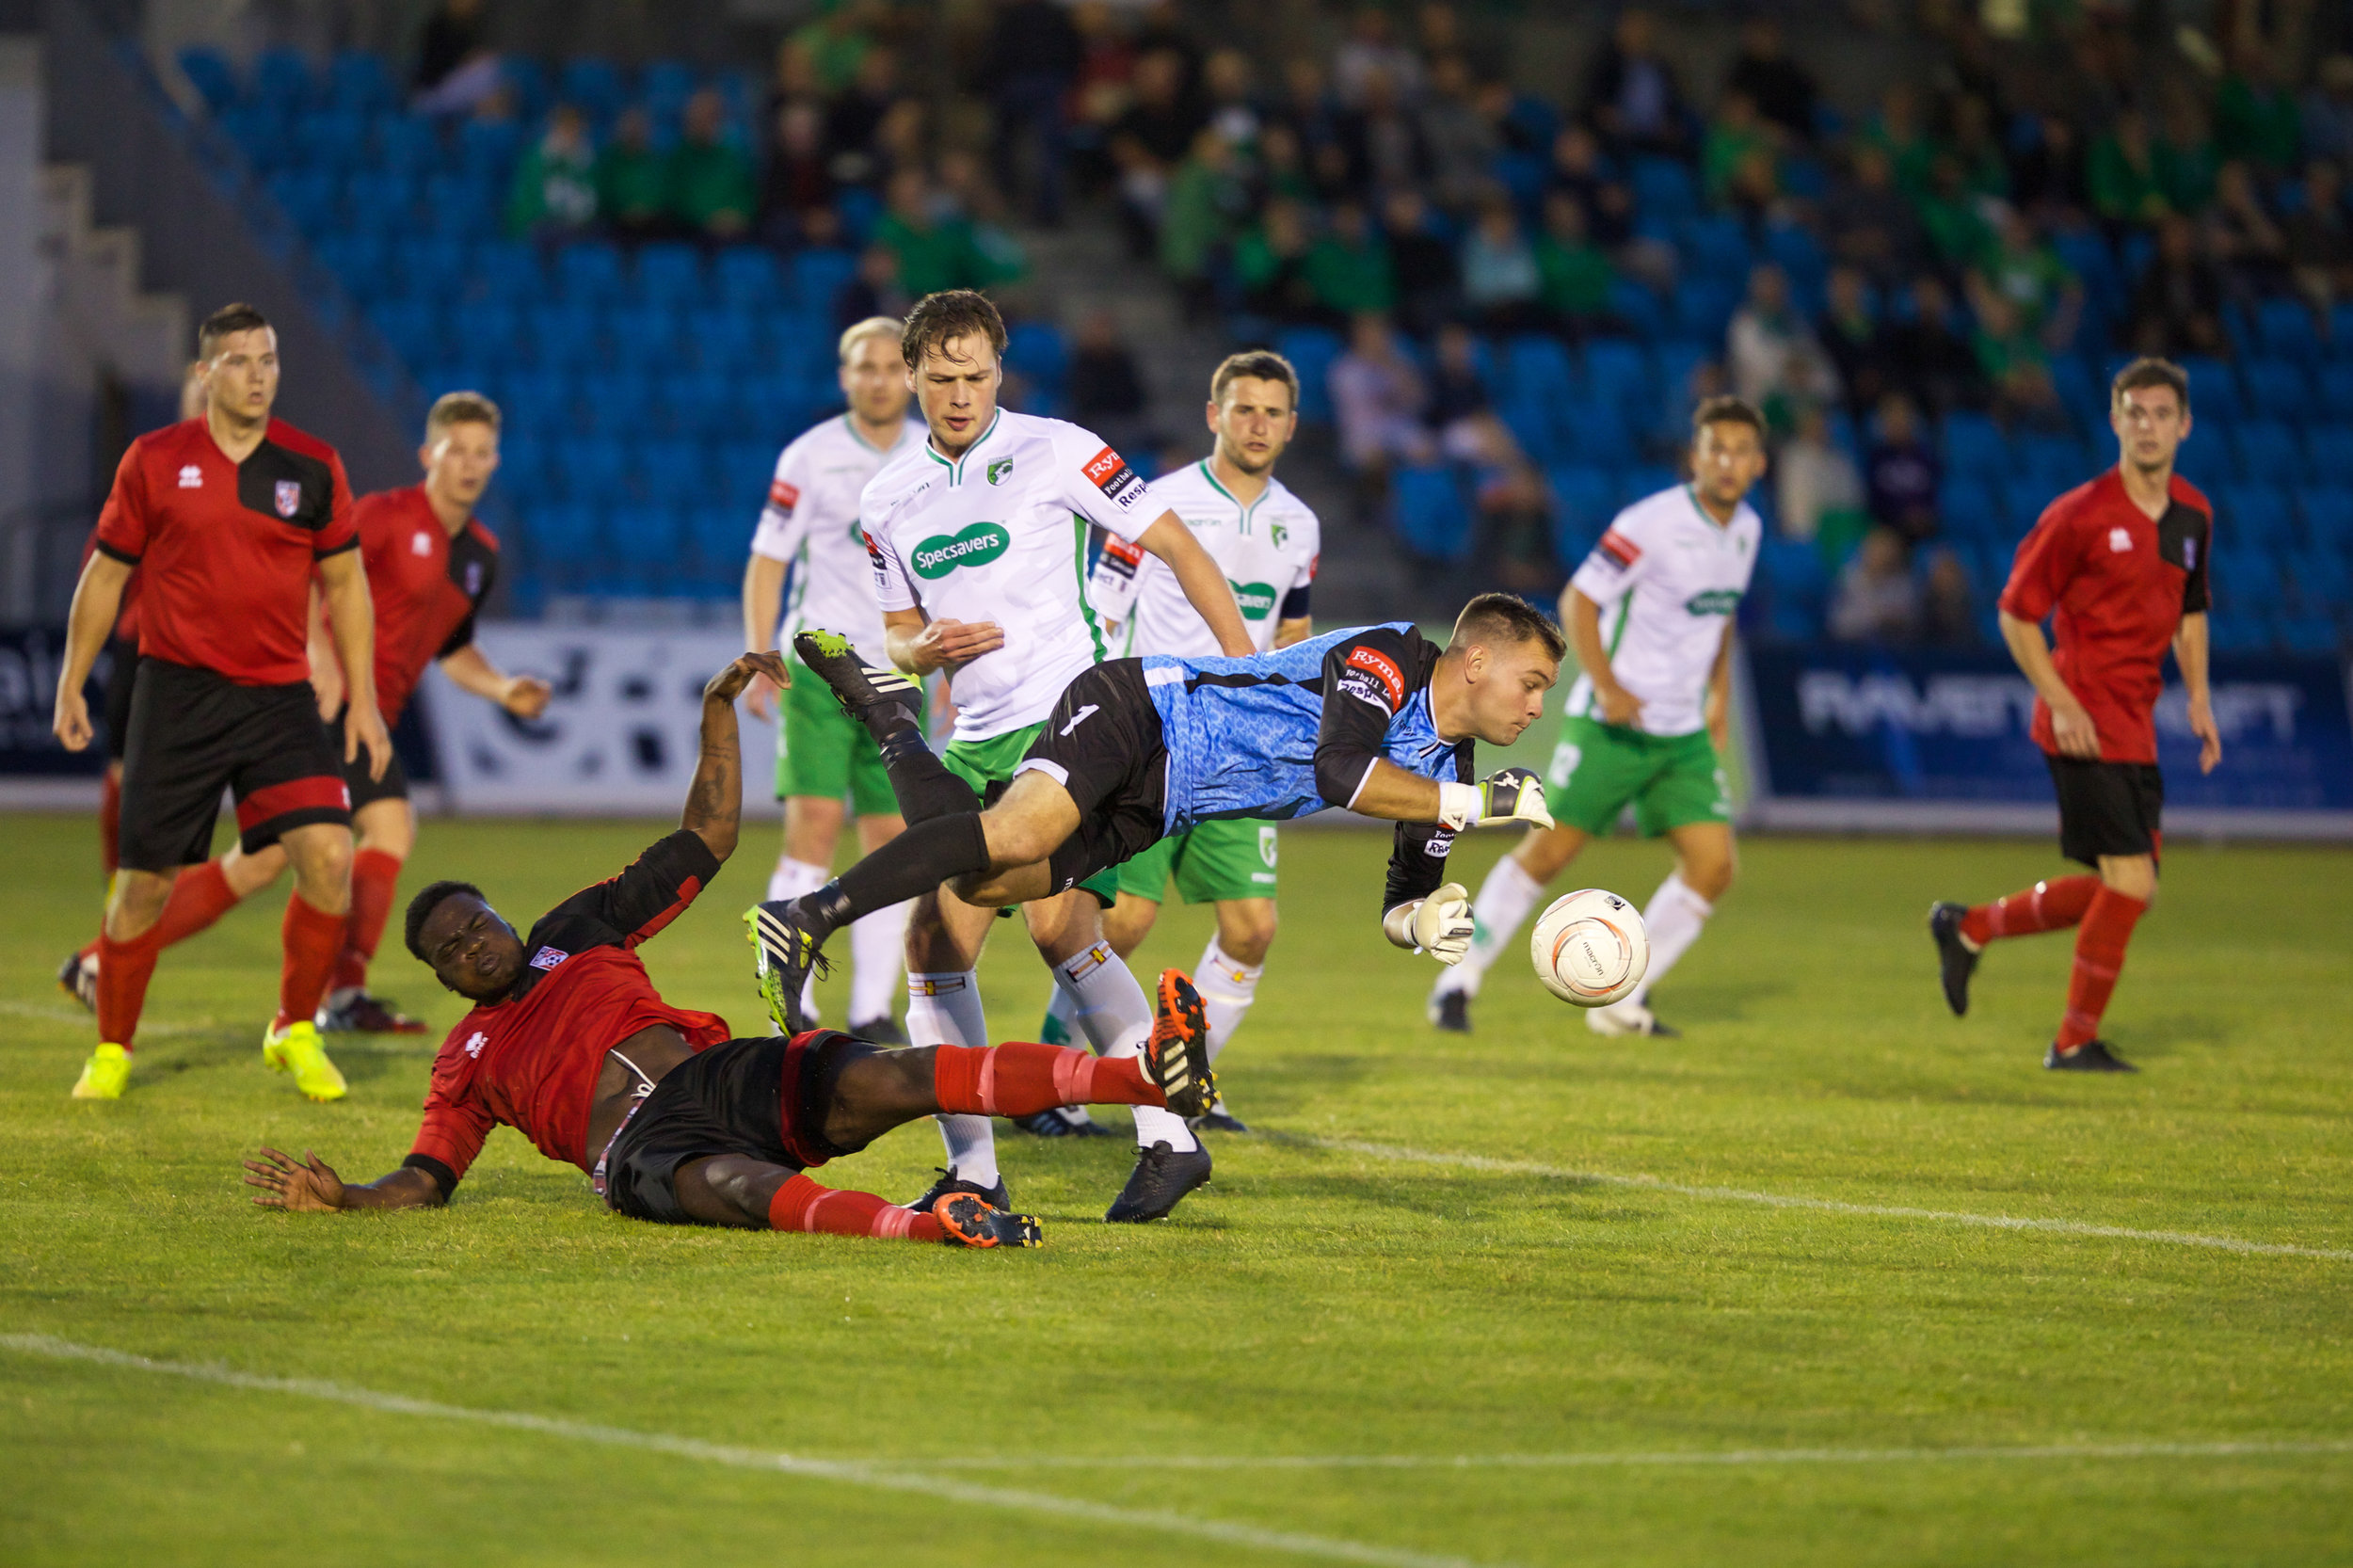 Guernsey FC v Glebe FC played at Footes Lane 31st July 2015… Glebe win 2-3...